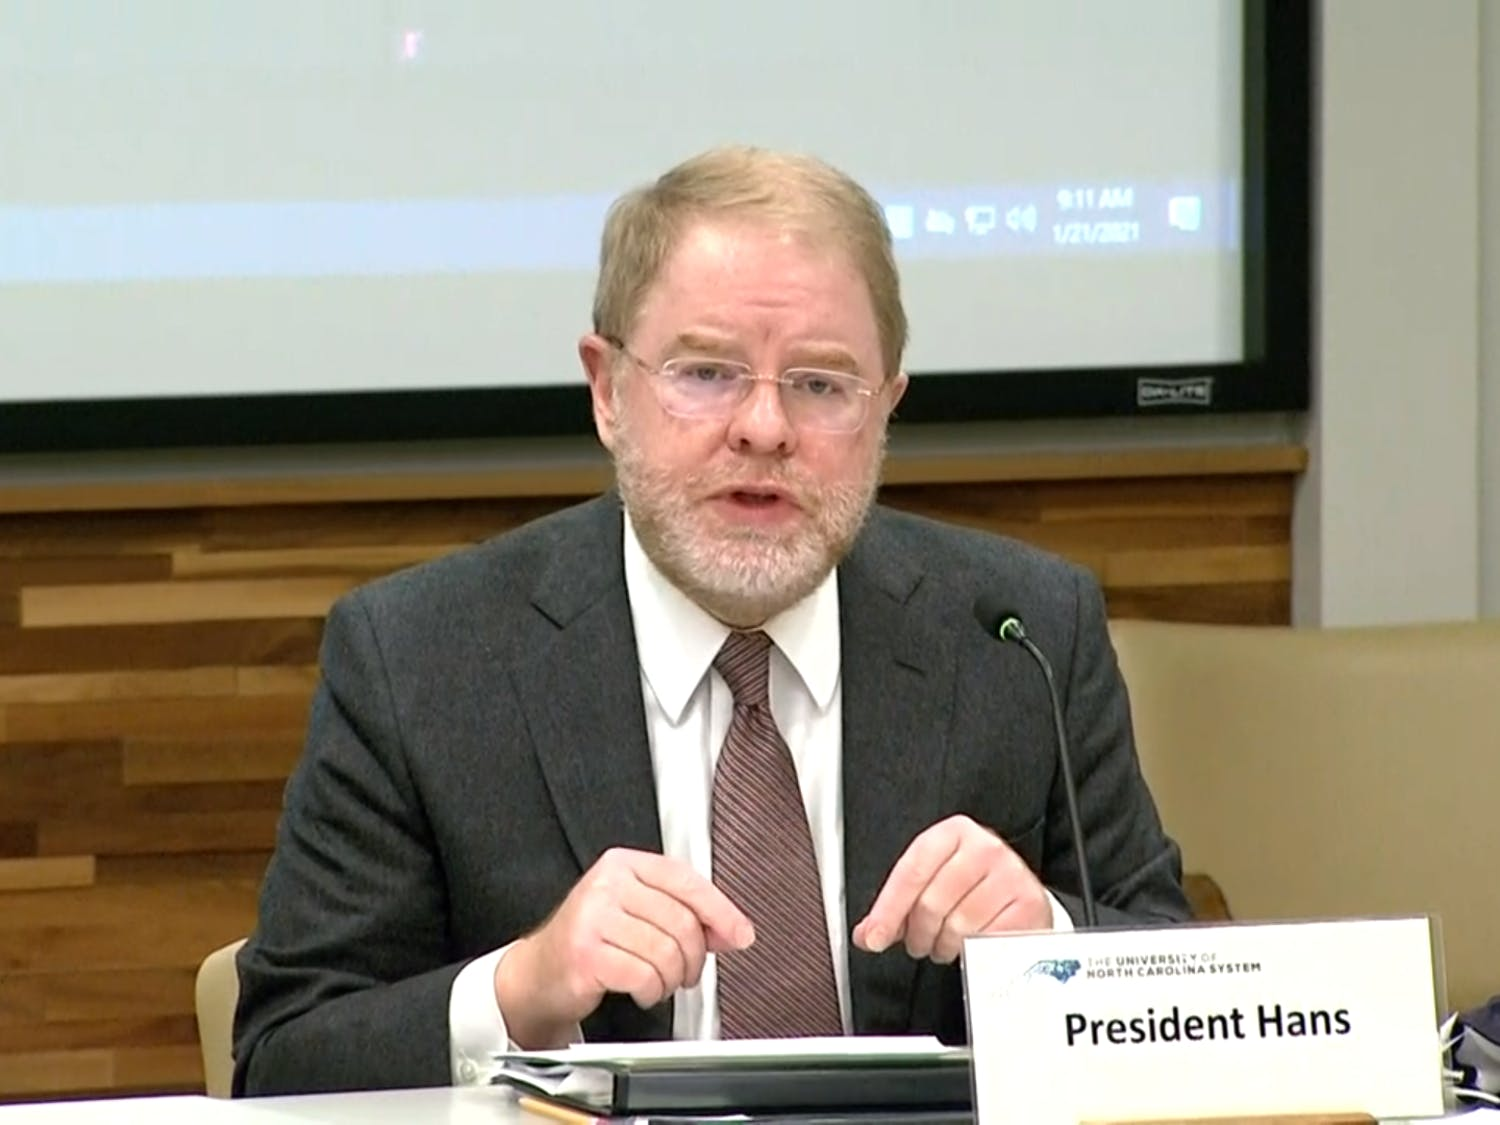 The UNC System President Peter Hans speaks at a meeting of the Board of Governors on Jan. 21, 2021. The BOG met to discuss safety concerns and vacant board positions.